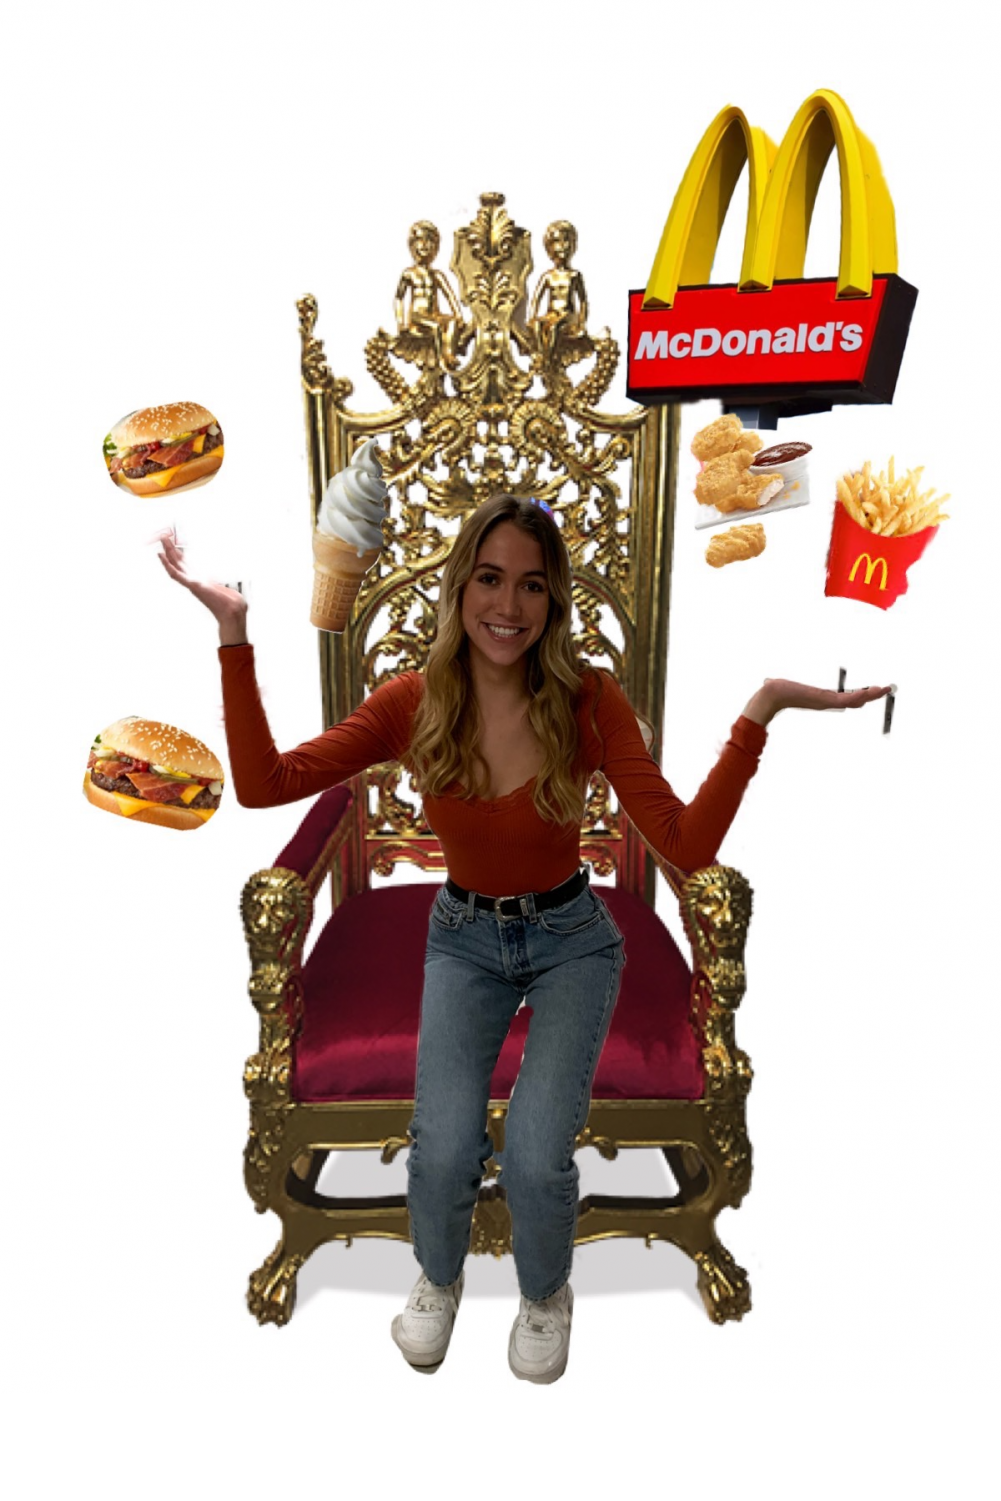 Sam Richardson, a McDonald's enthusiast, sits on throne of burgers, fries, and chicken nuggets.